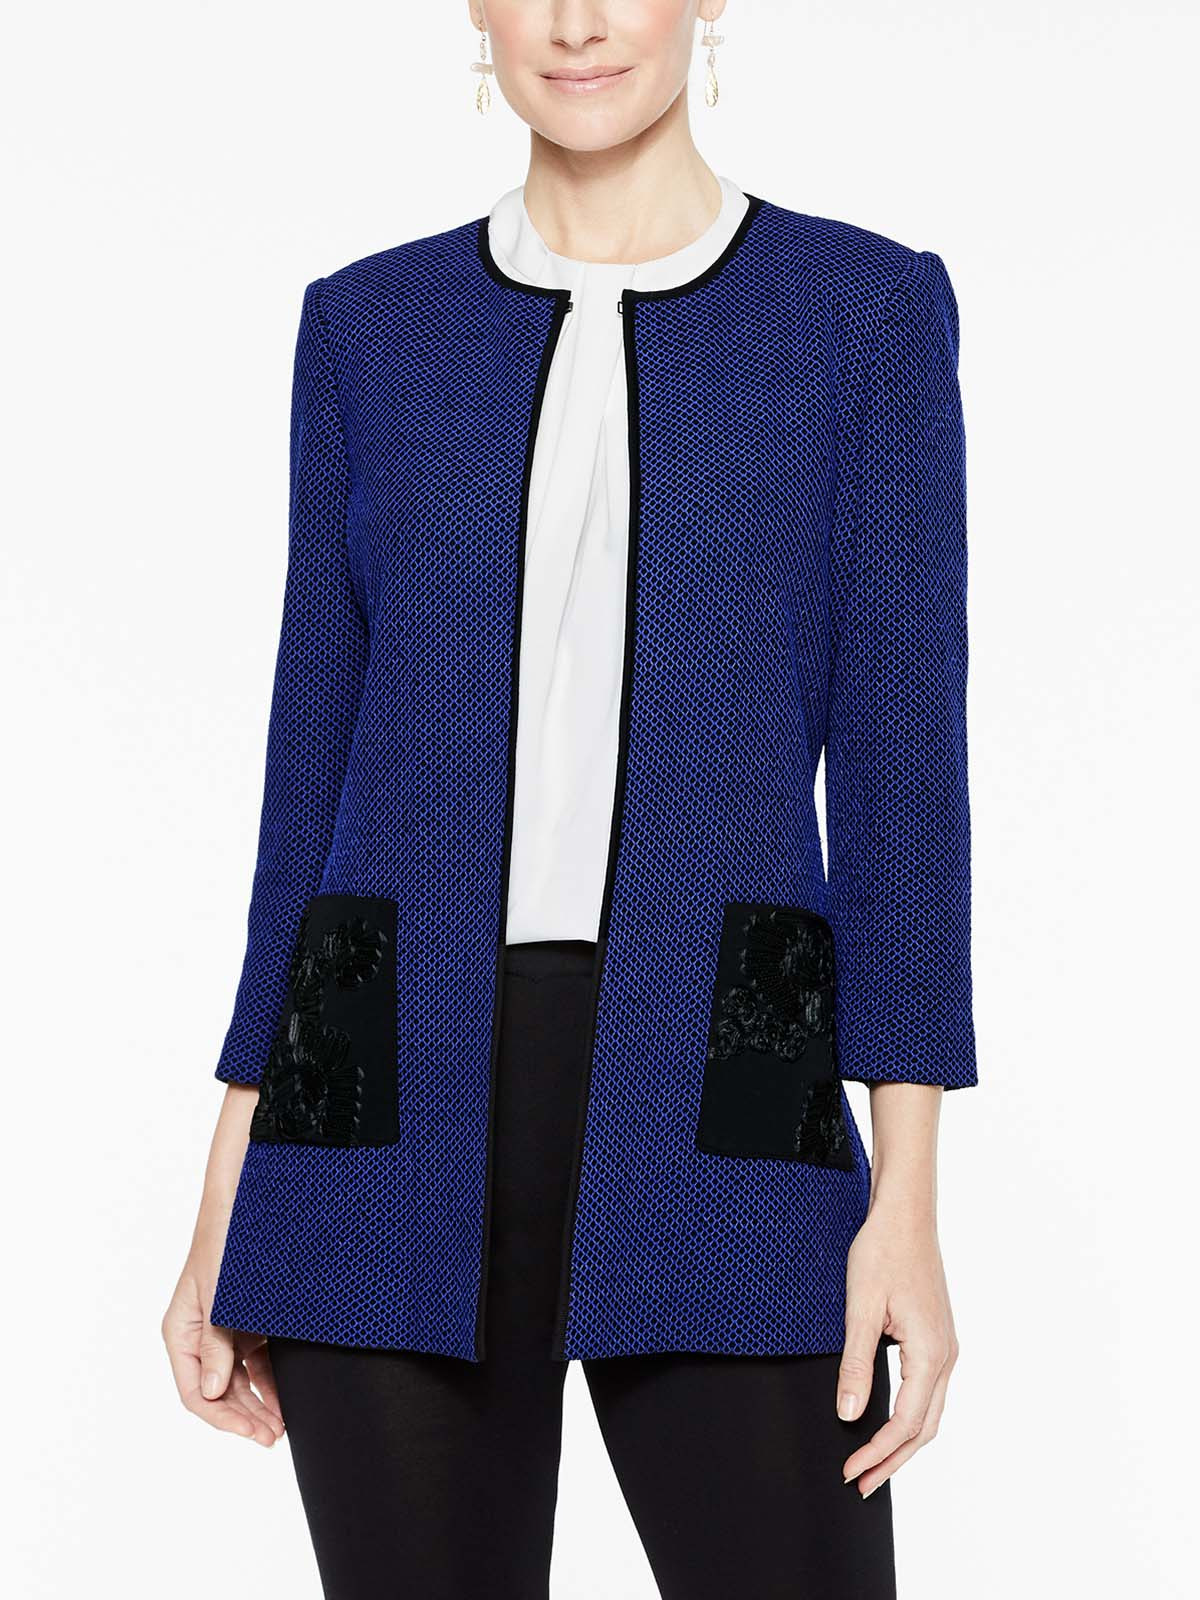 Floral Applique Pocket Jacket Color Black/Blue Flame